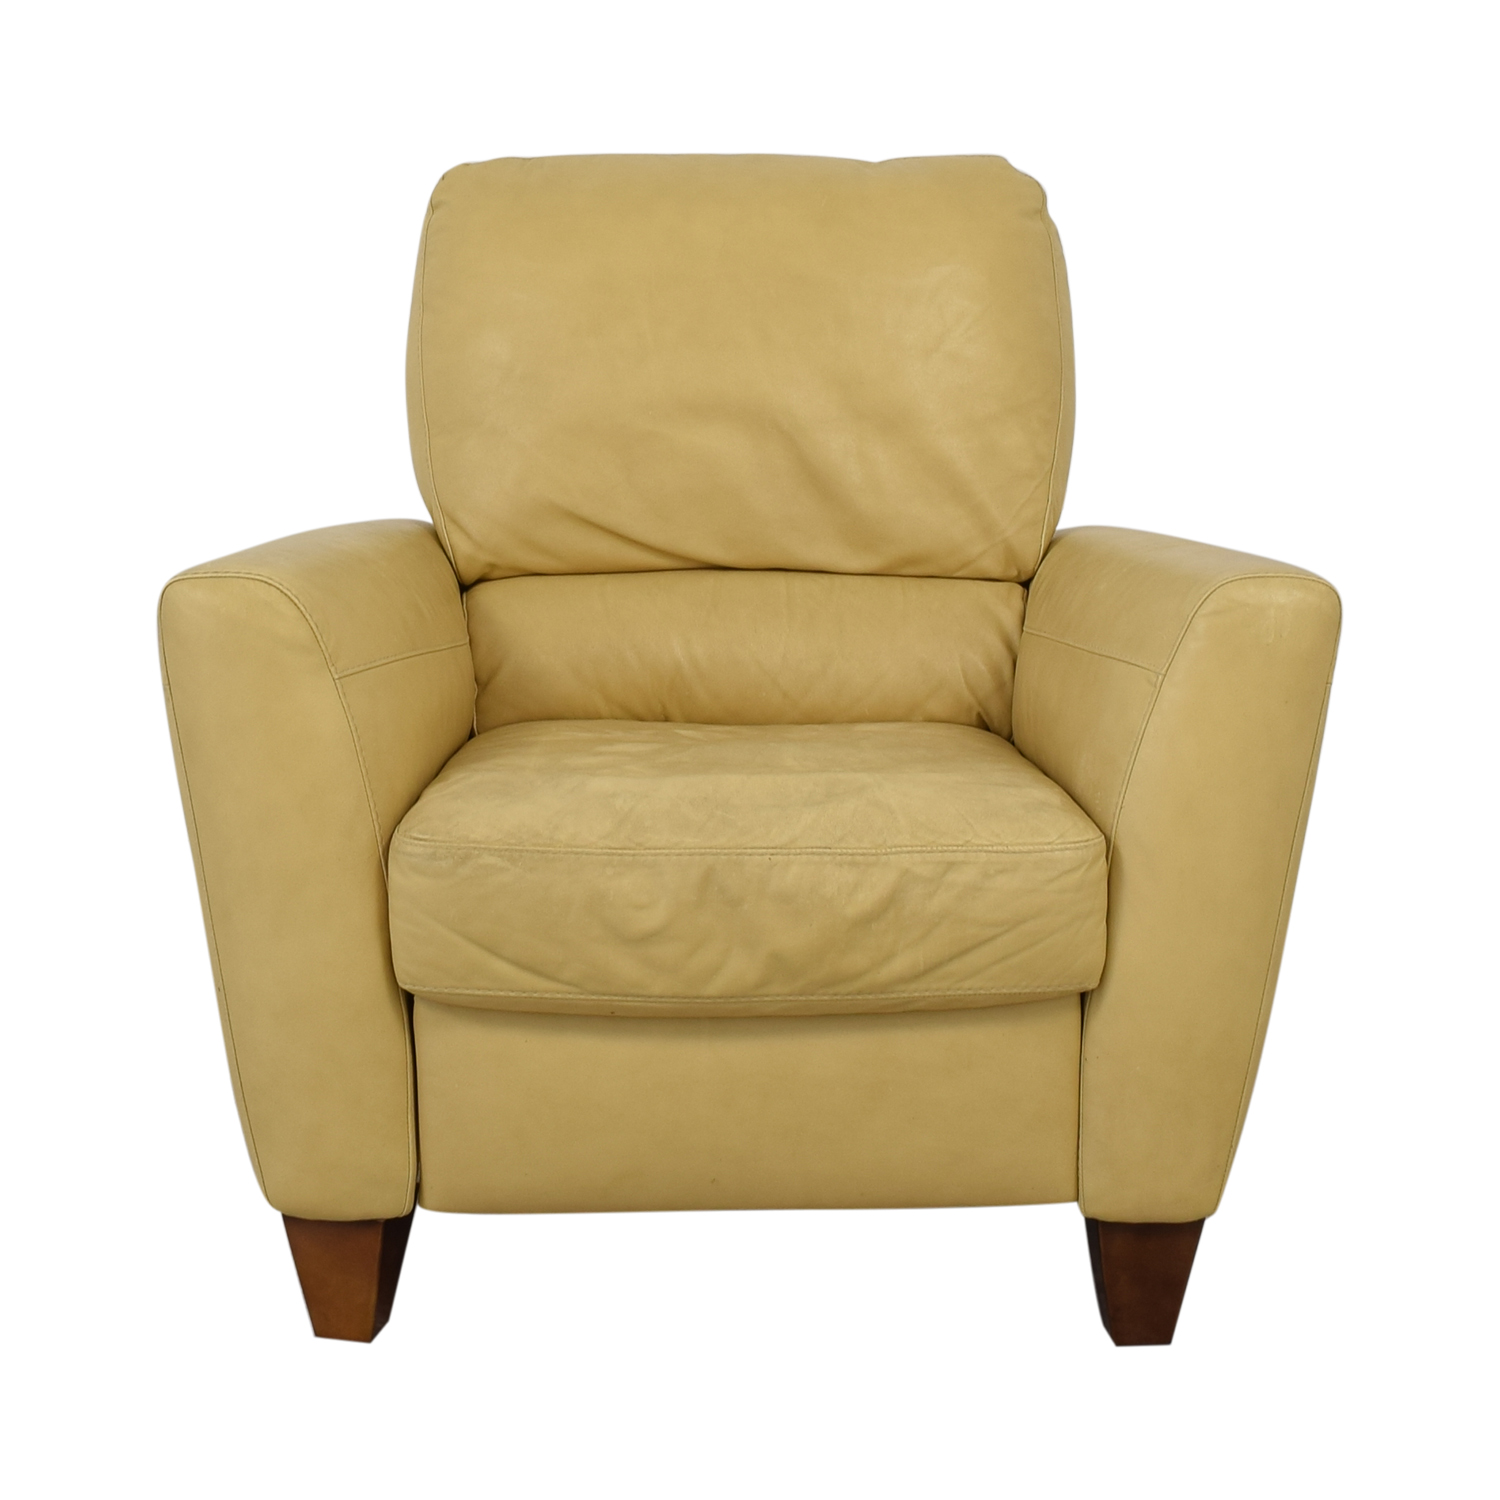 Macy's Mustard Yellow Recliner / Chairs